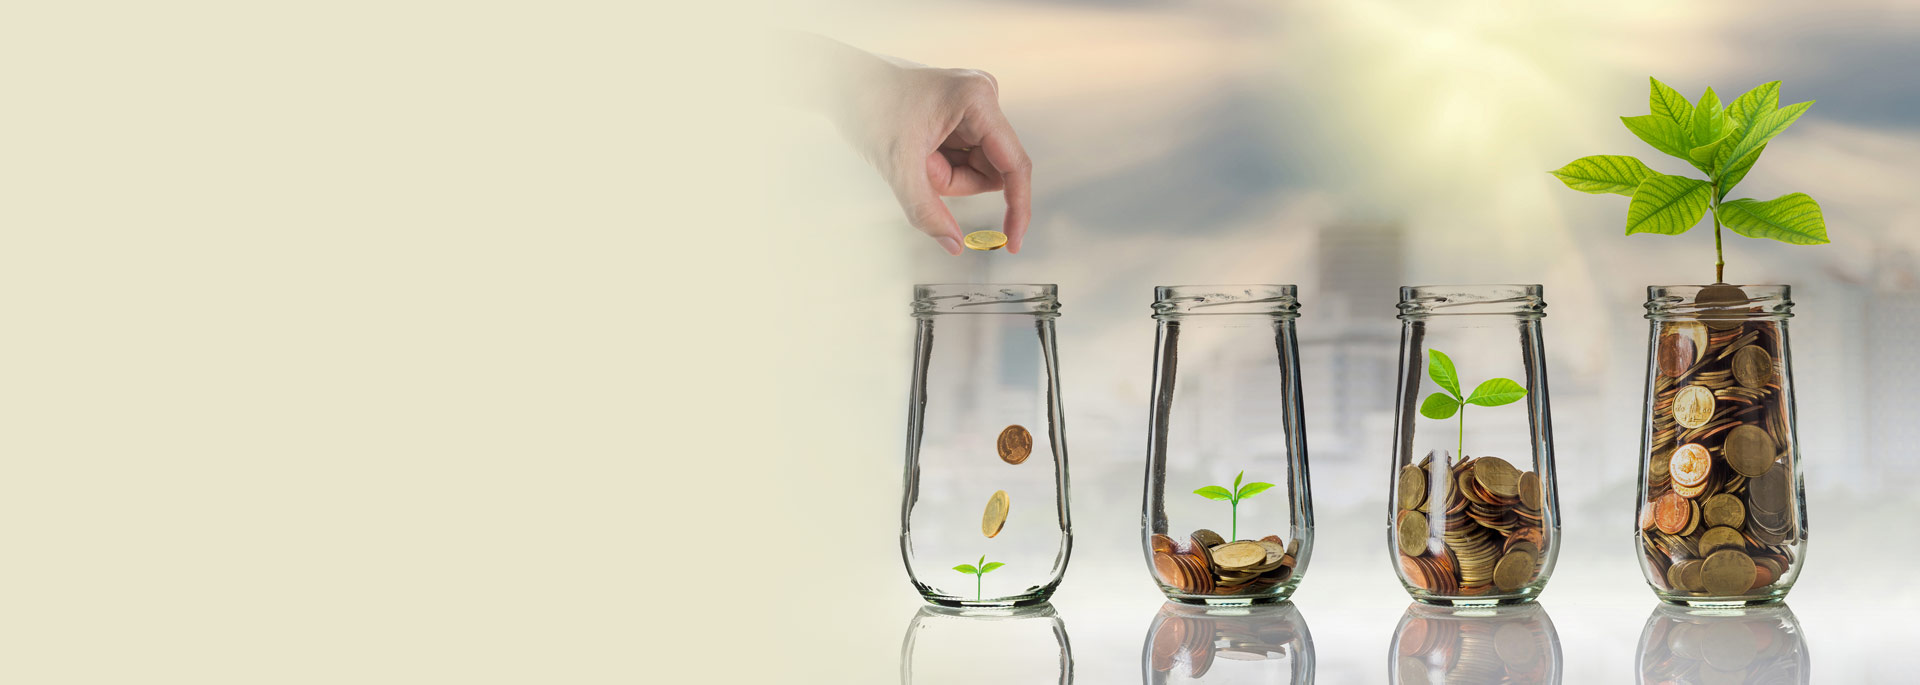 Currently Why is the Best Time to Invest In Fixed Deposits?